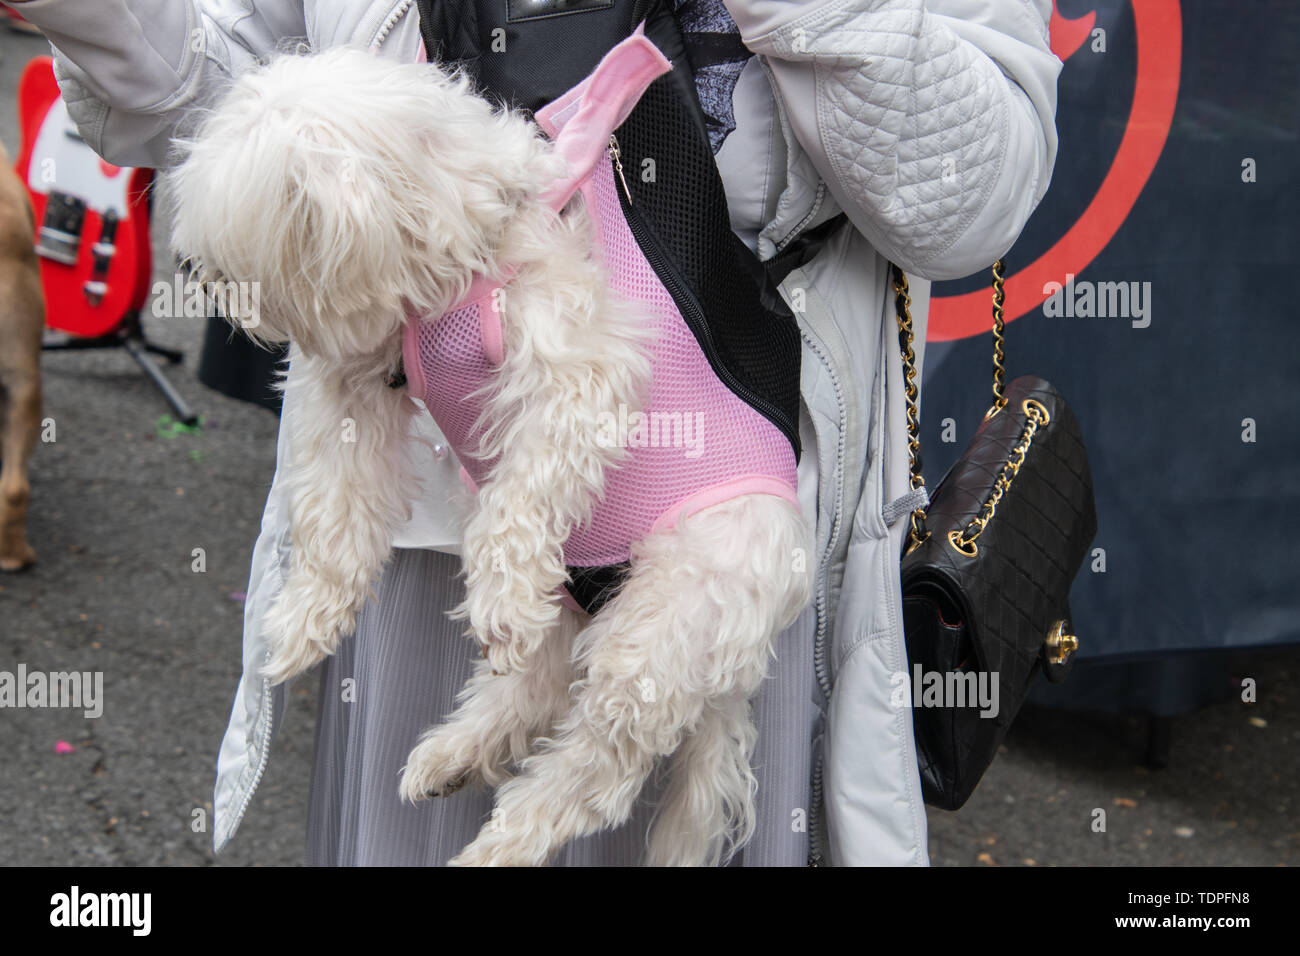 Horizontal view of a woman in a white jacket carrying a shaggy white dog in a pink dog carrier attached to her body - Stock Image